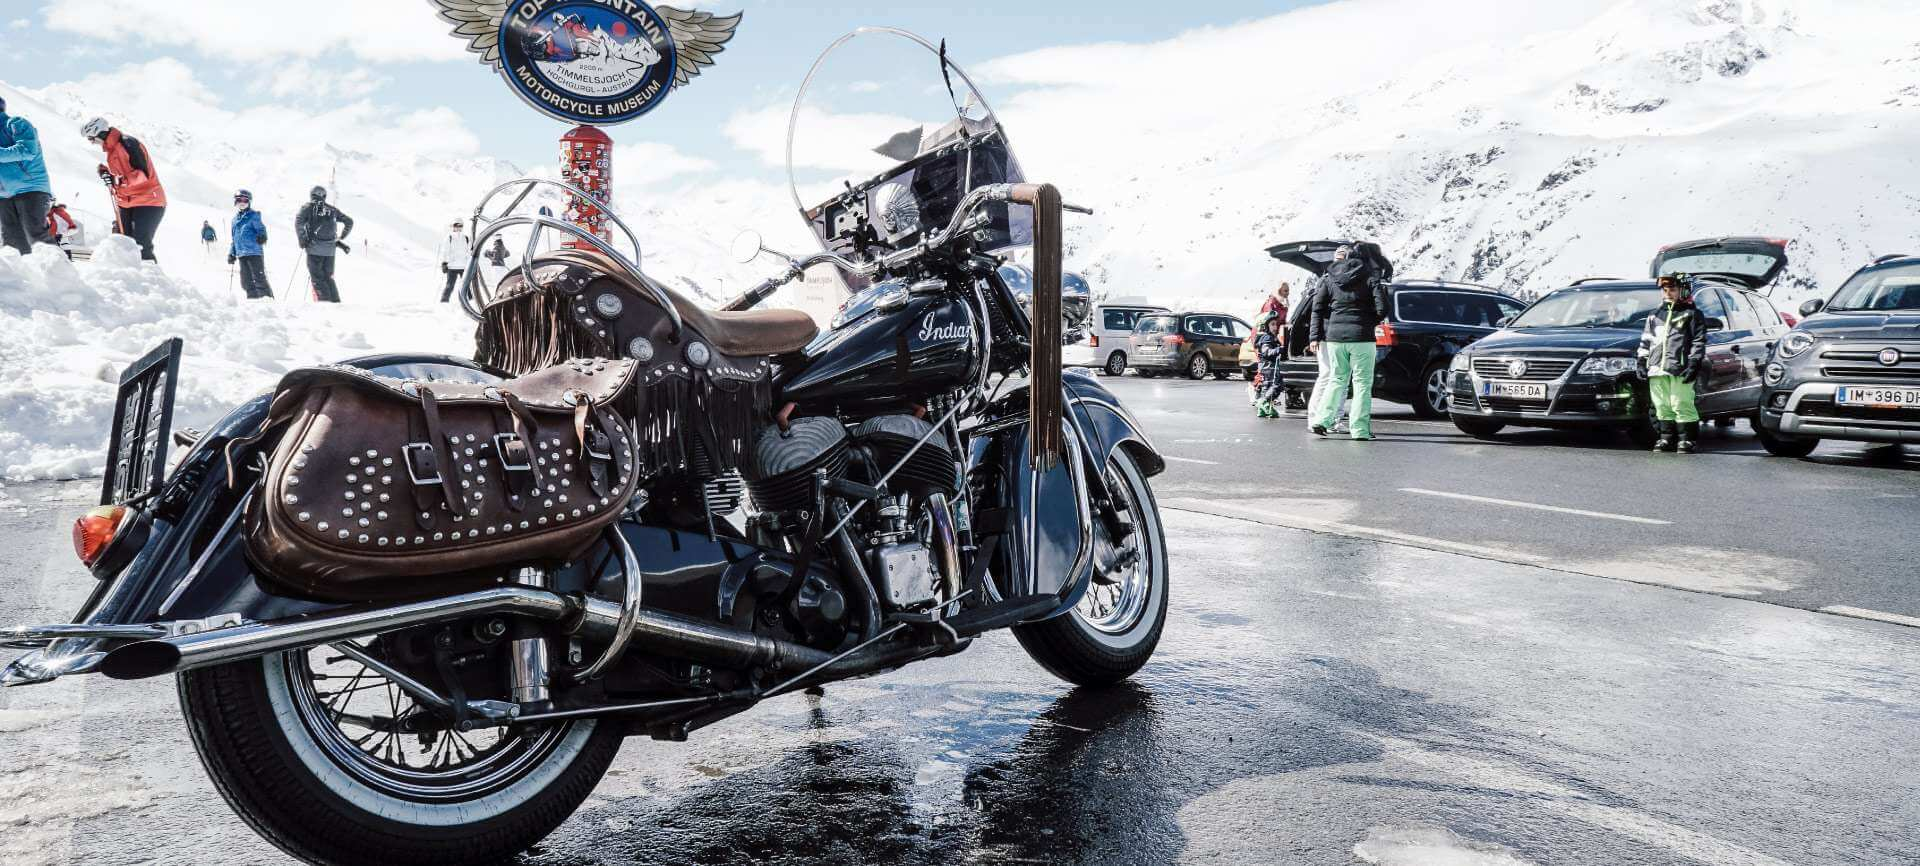 TOP Mountain Motorcycle Museum, Hochgurgl/Tirol: Sonderausstellung Indian Motorcycles